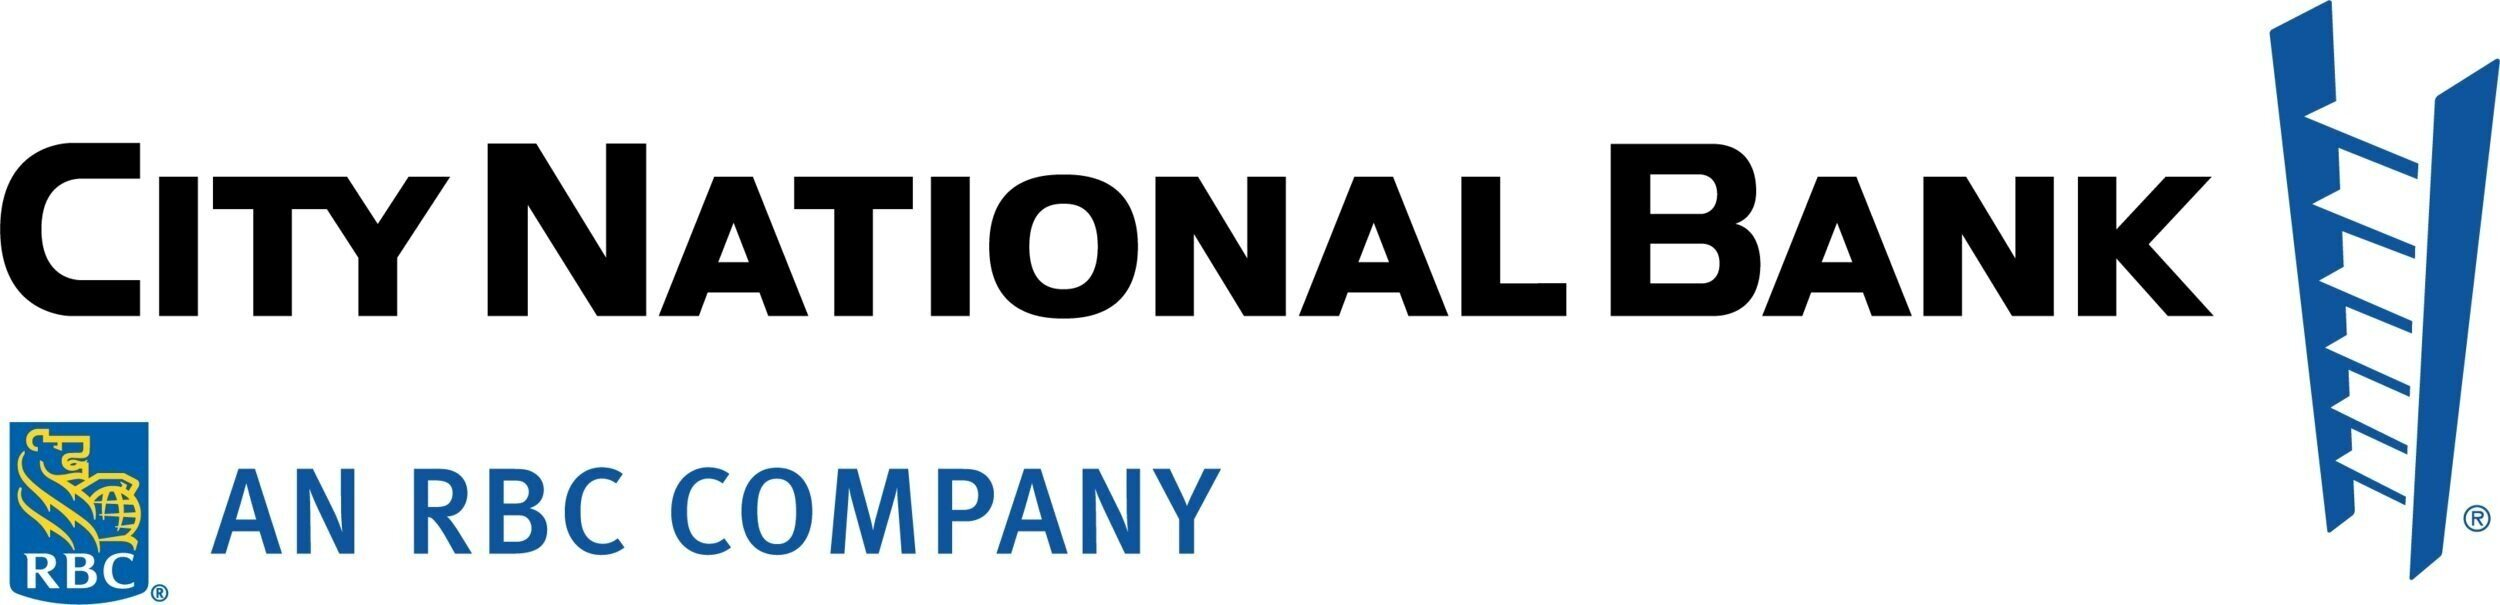 CNB-RBC Integrated Logo_RGB.png